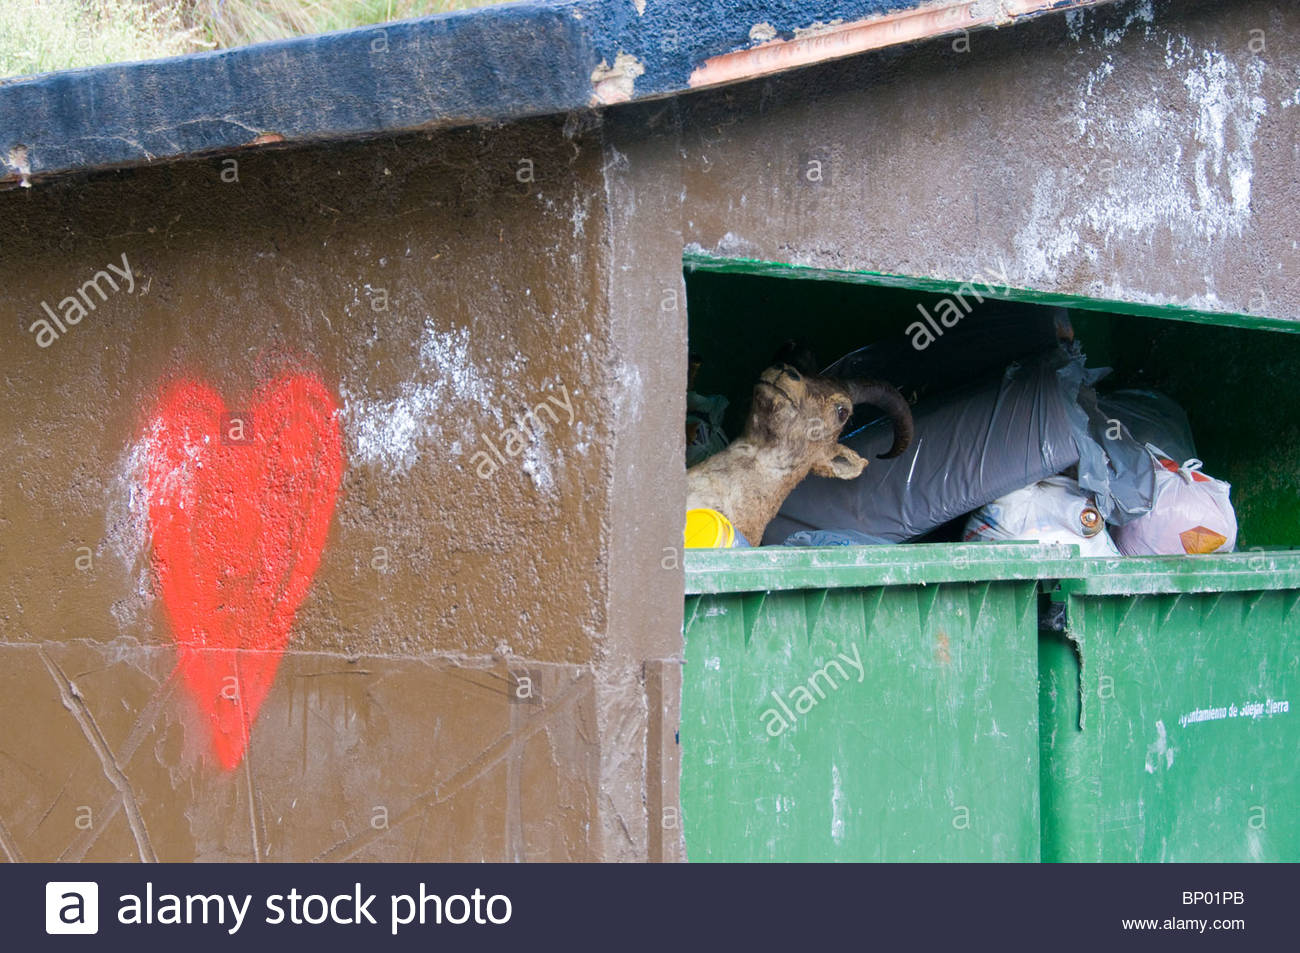 A stuffed wild goat dumped in a rubbish container - Stock Image